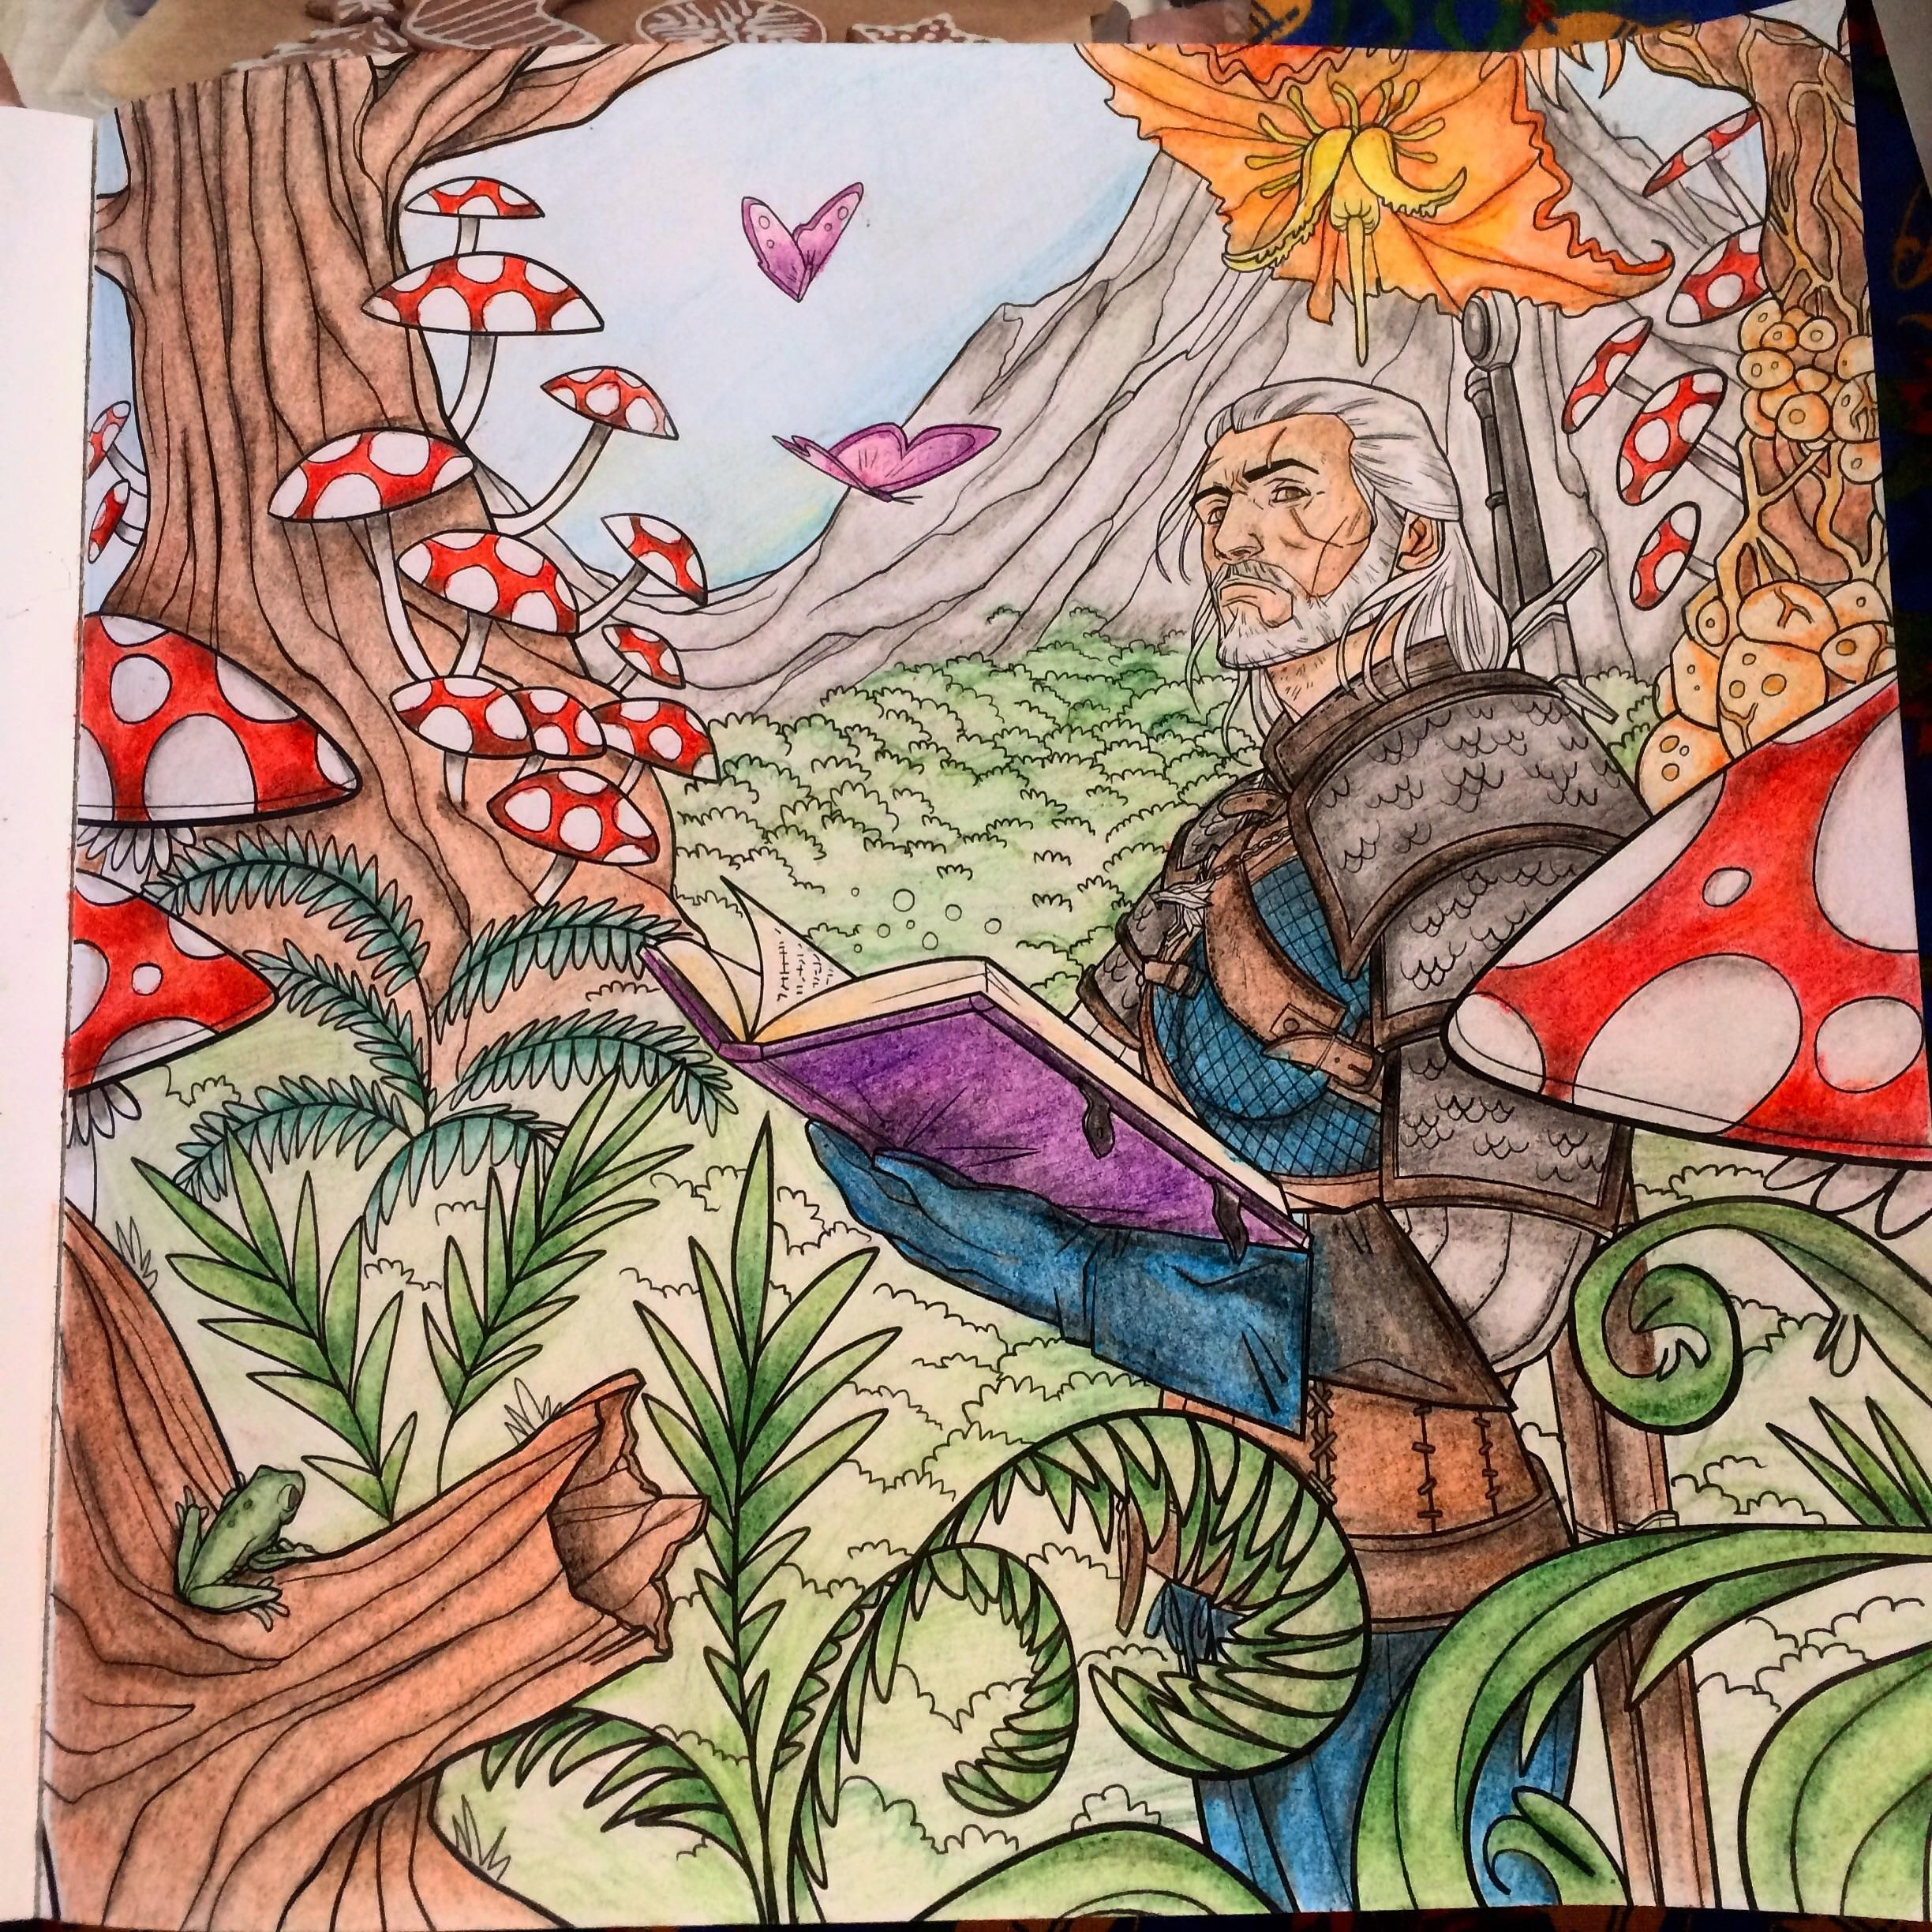 Got The Witcher Coloring Book From My Boyfriend As A Christmas Present This Is The First One I Ve Made Thought W The Witcher Coloring Books The Witcher Books